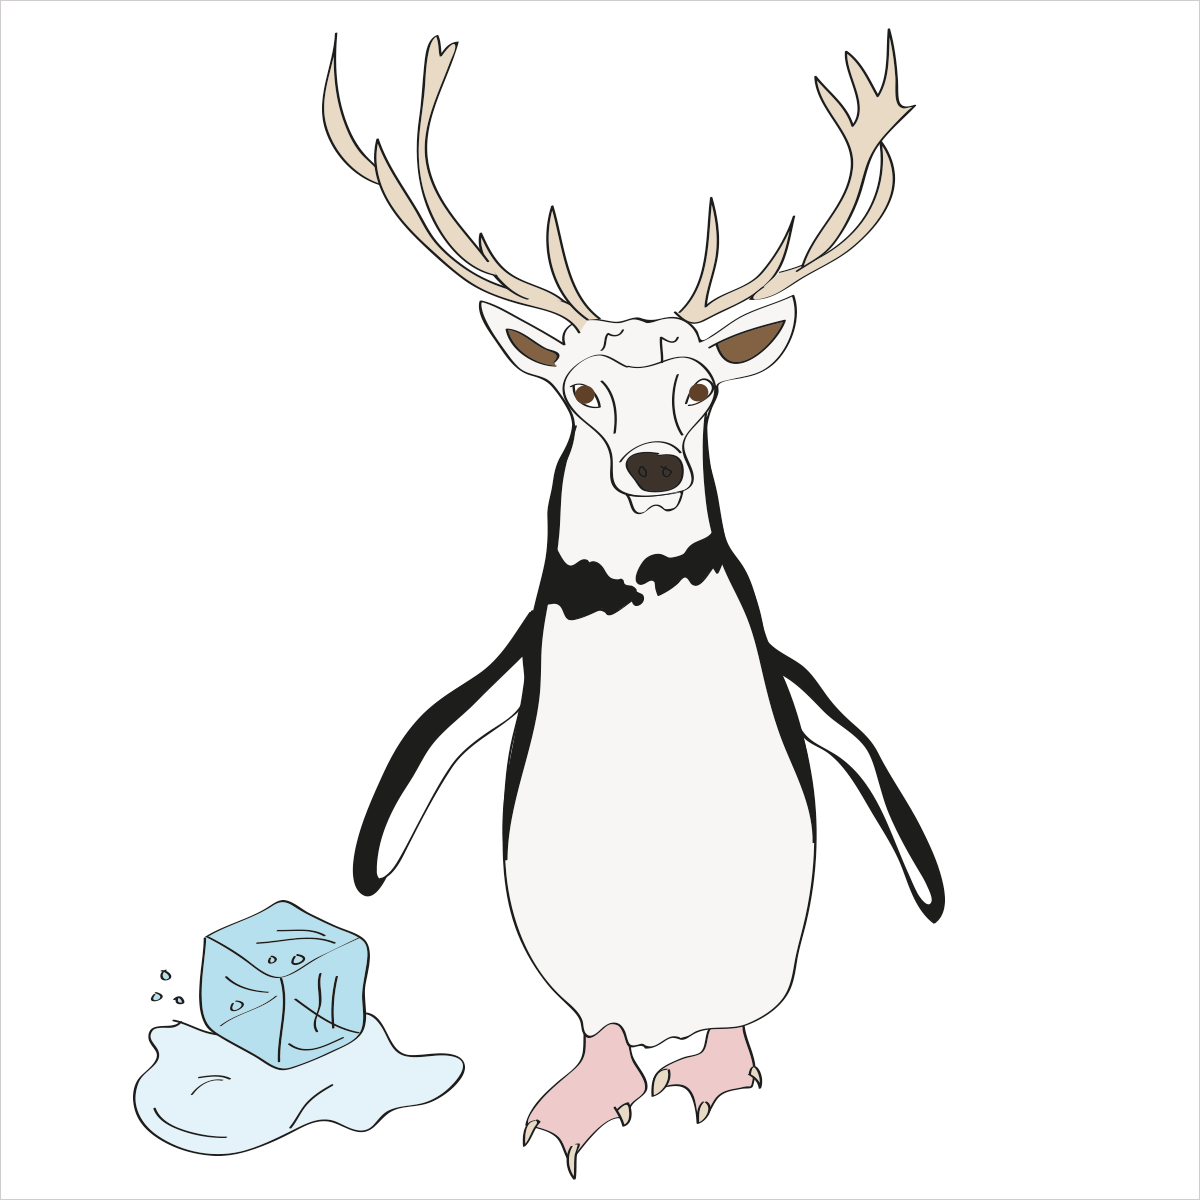 He is gentle with kind eyes that sometimes get caught in the headlights while ice skating in a tuxedo. He is PENGUINDEER